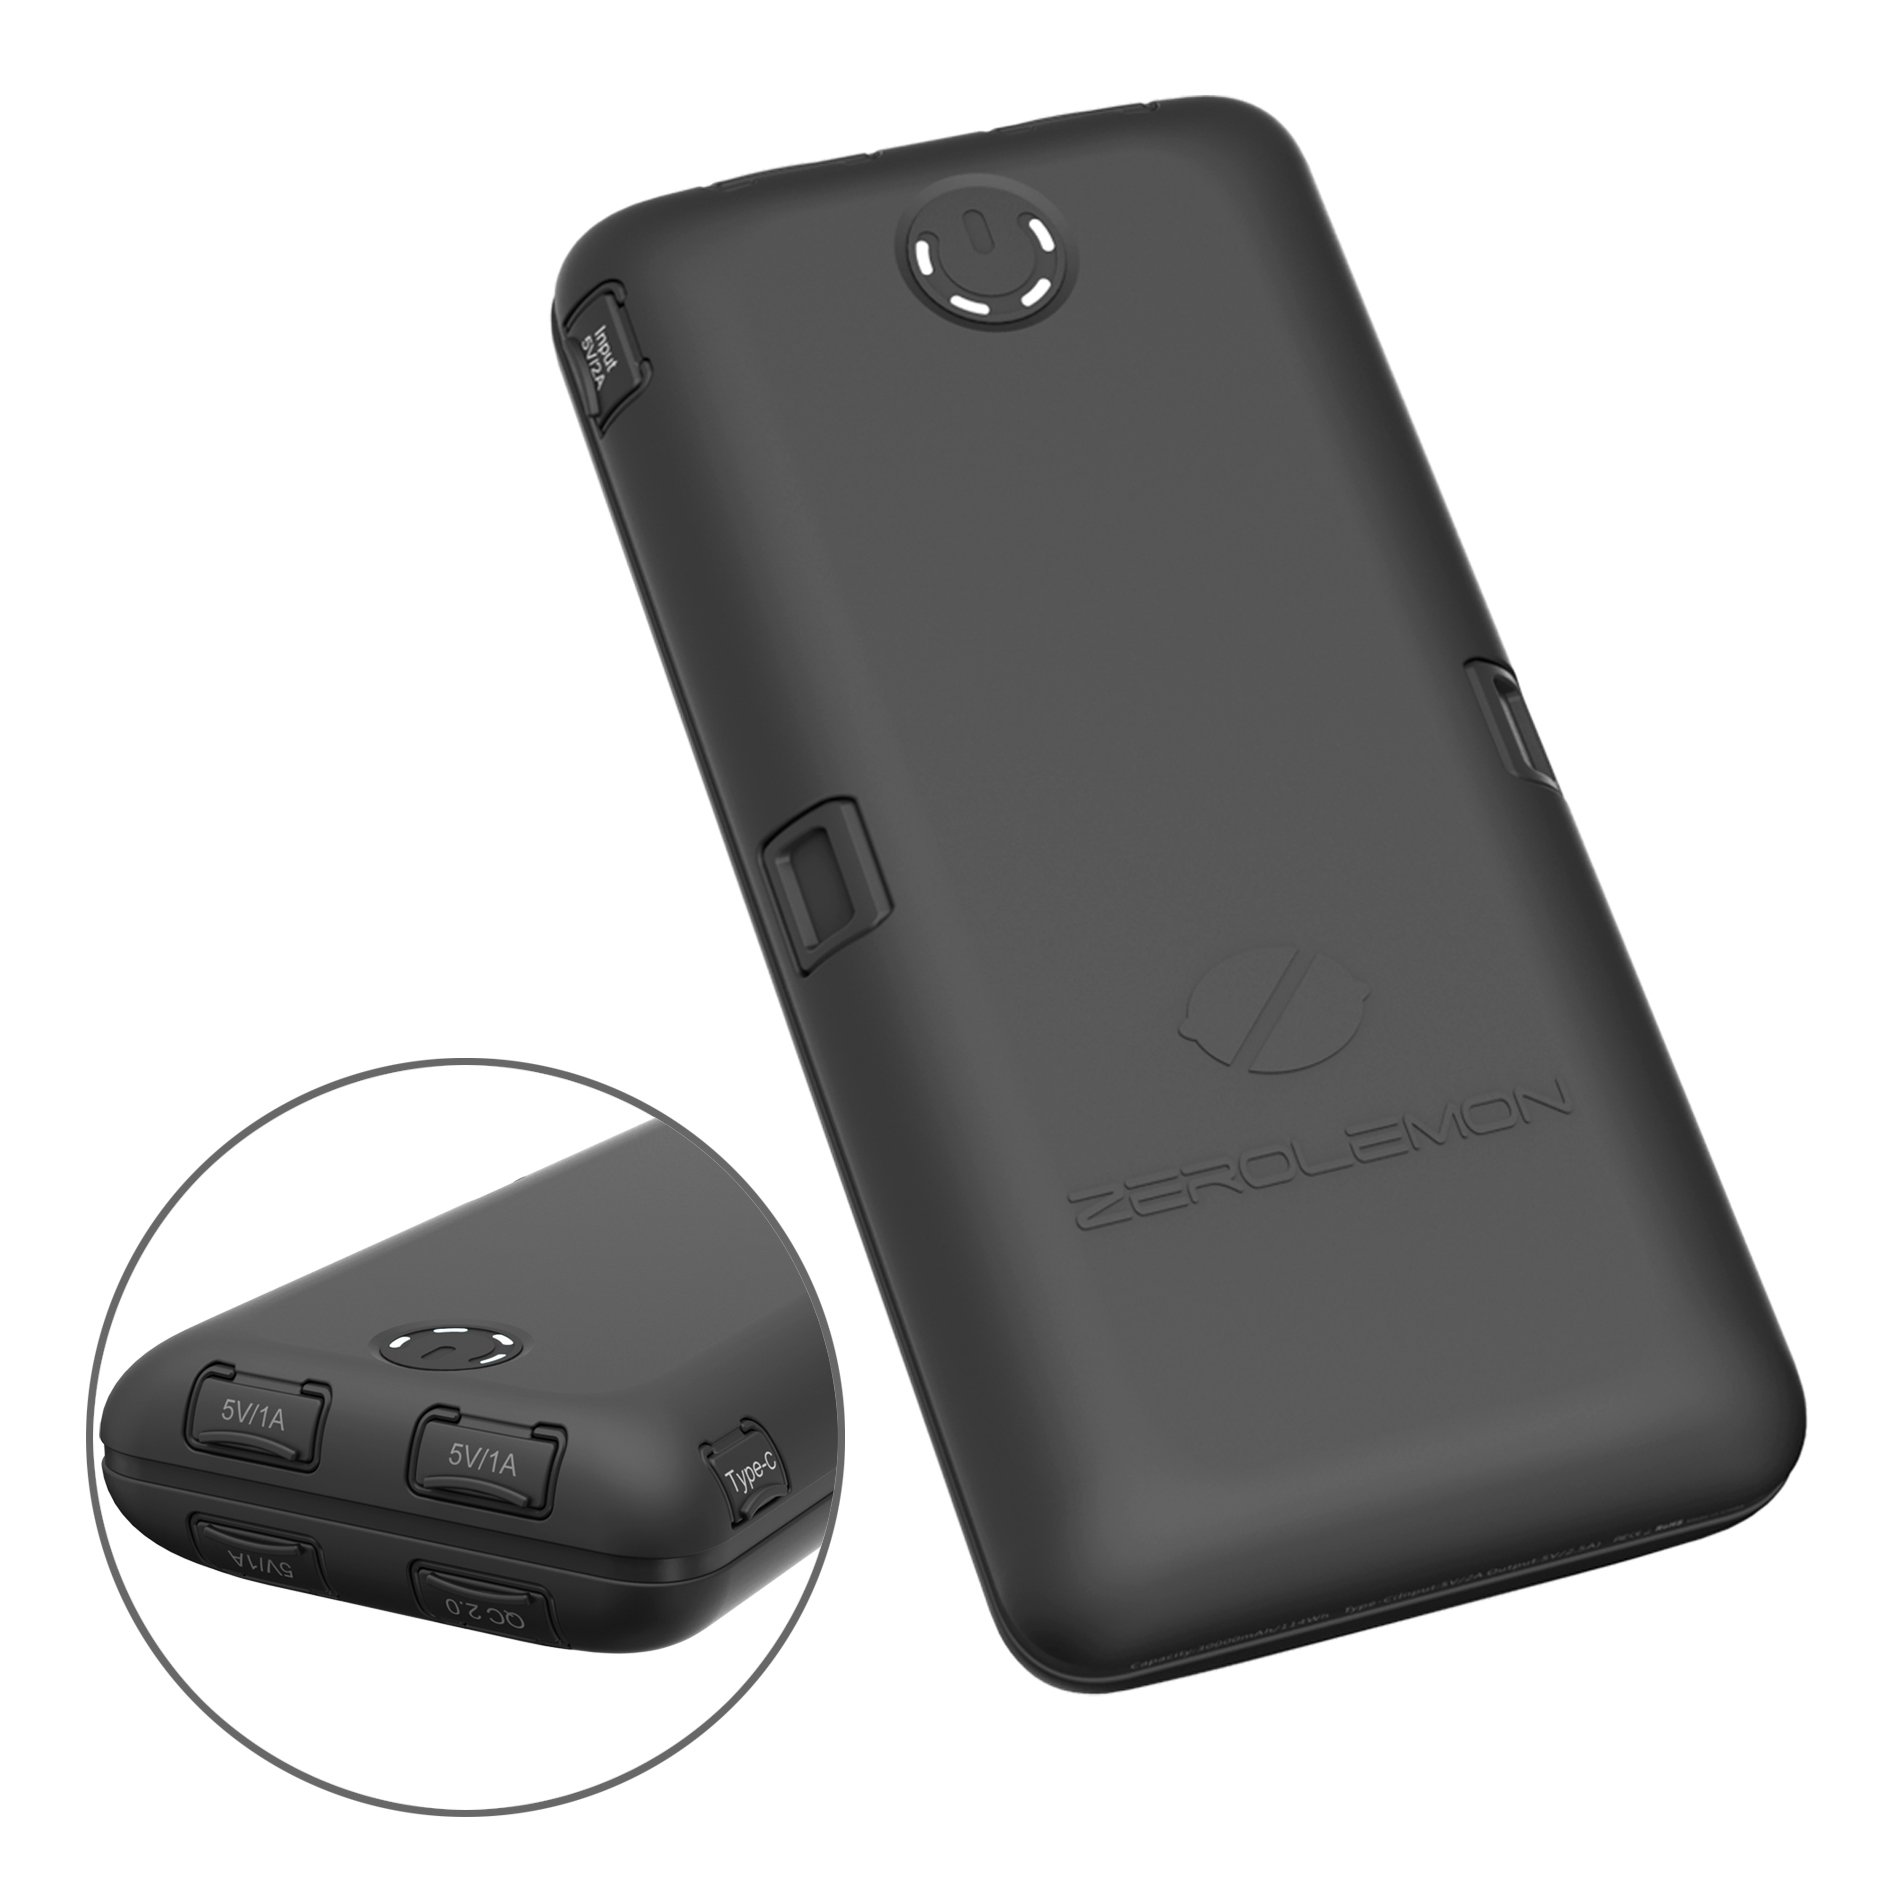 info for e74d8 350fe ZeroLemon ToughJuice V2.0 30000mAh External Battery - Unboxed